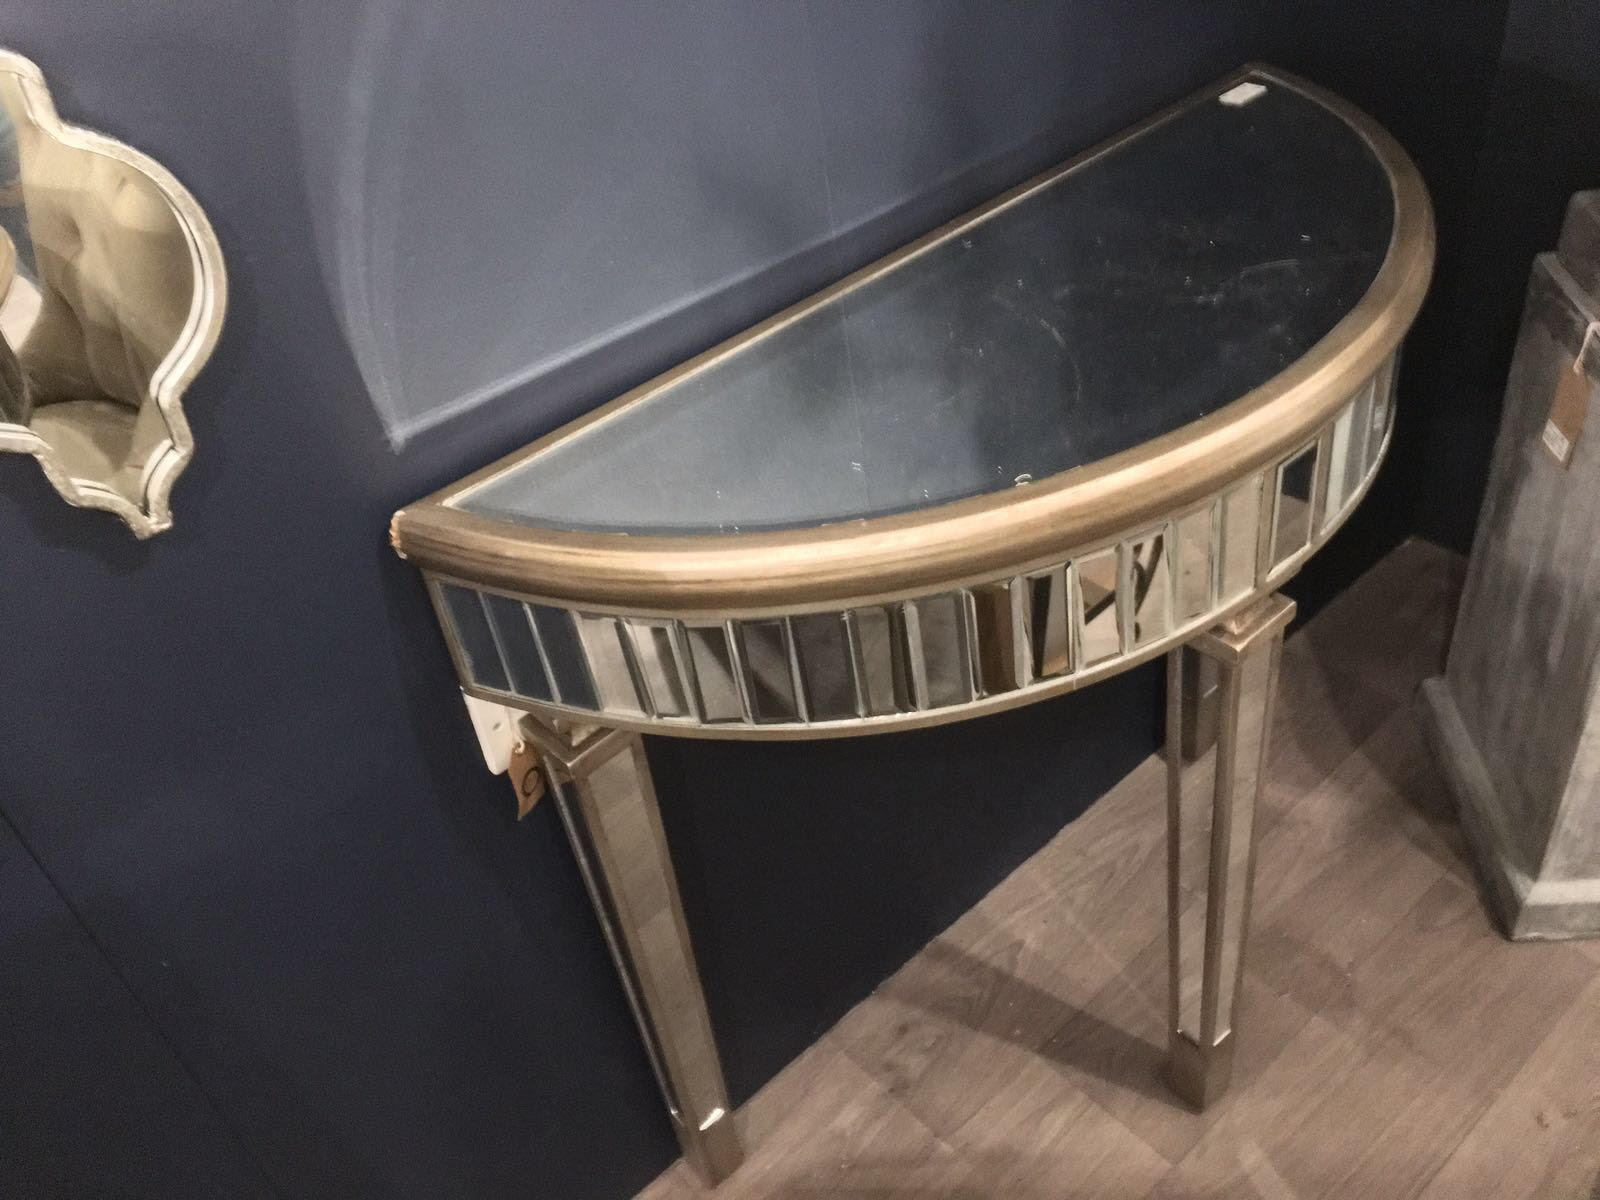 The Belfont Collection Half Moon Mirrored Table